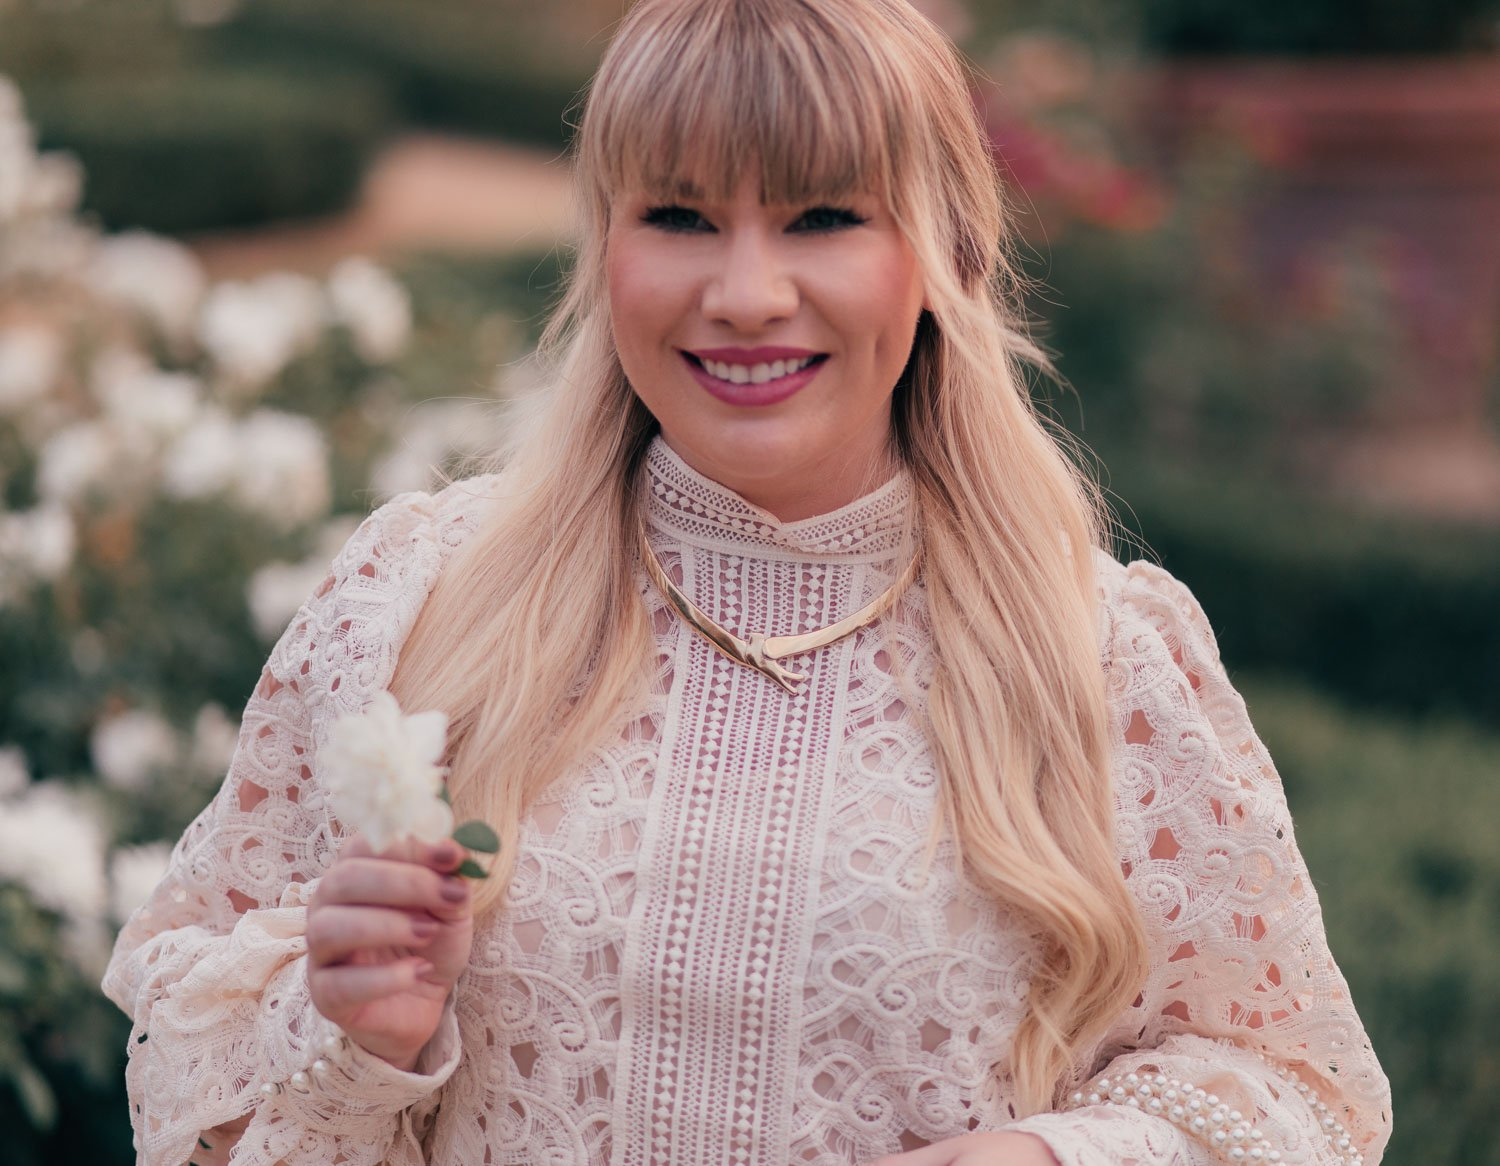 Fashion Blogger Elizabeth Hugen of Lizzie in Lace shares a Feminine White Monochrome Outfit for Fall and a UNOde50 necklace